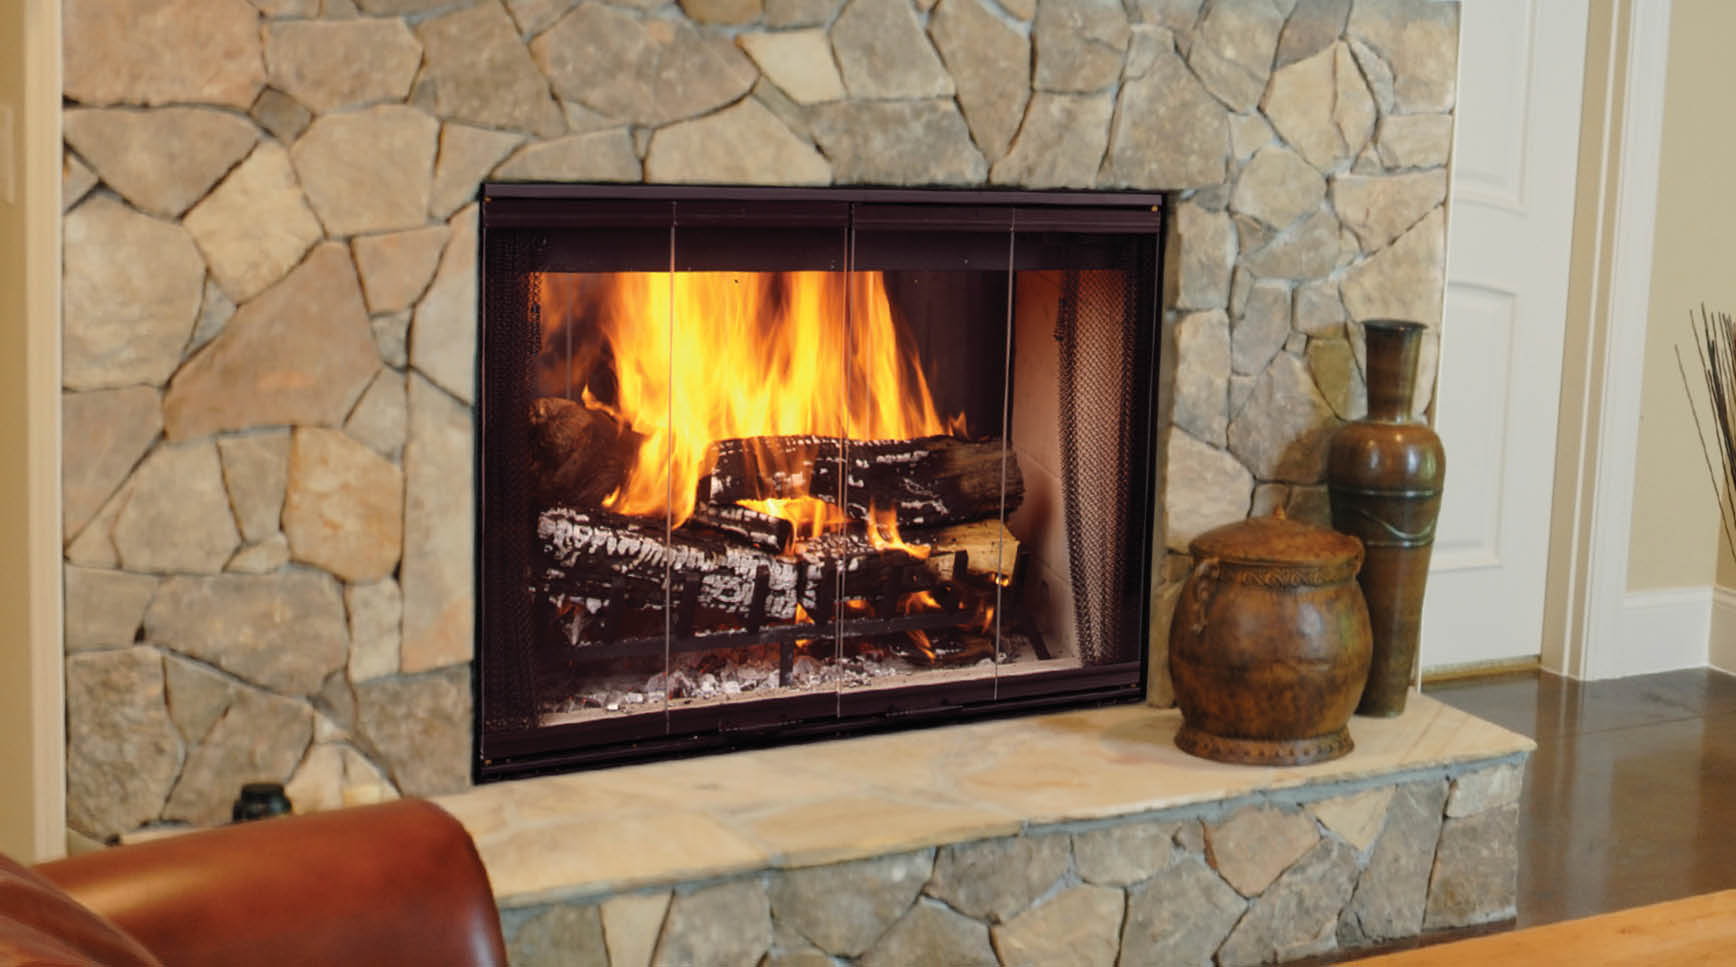 bowden u0027s fireside blog archive the romance of a fireplace